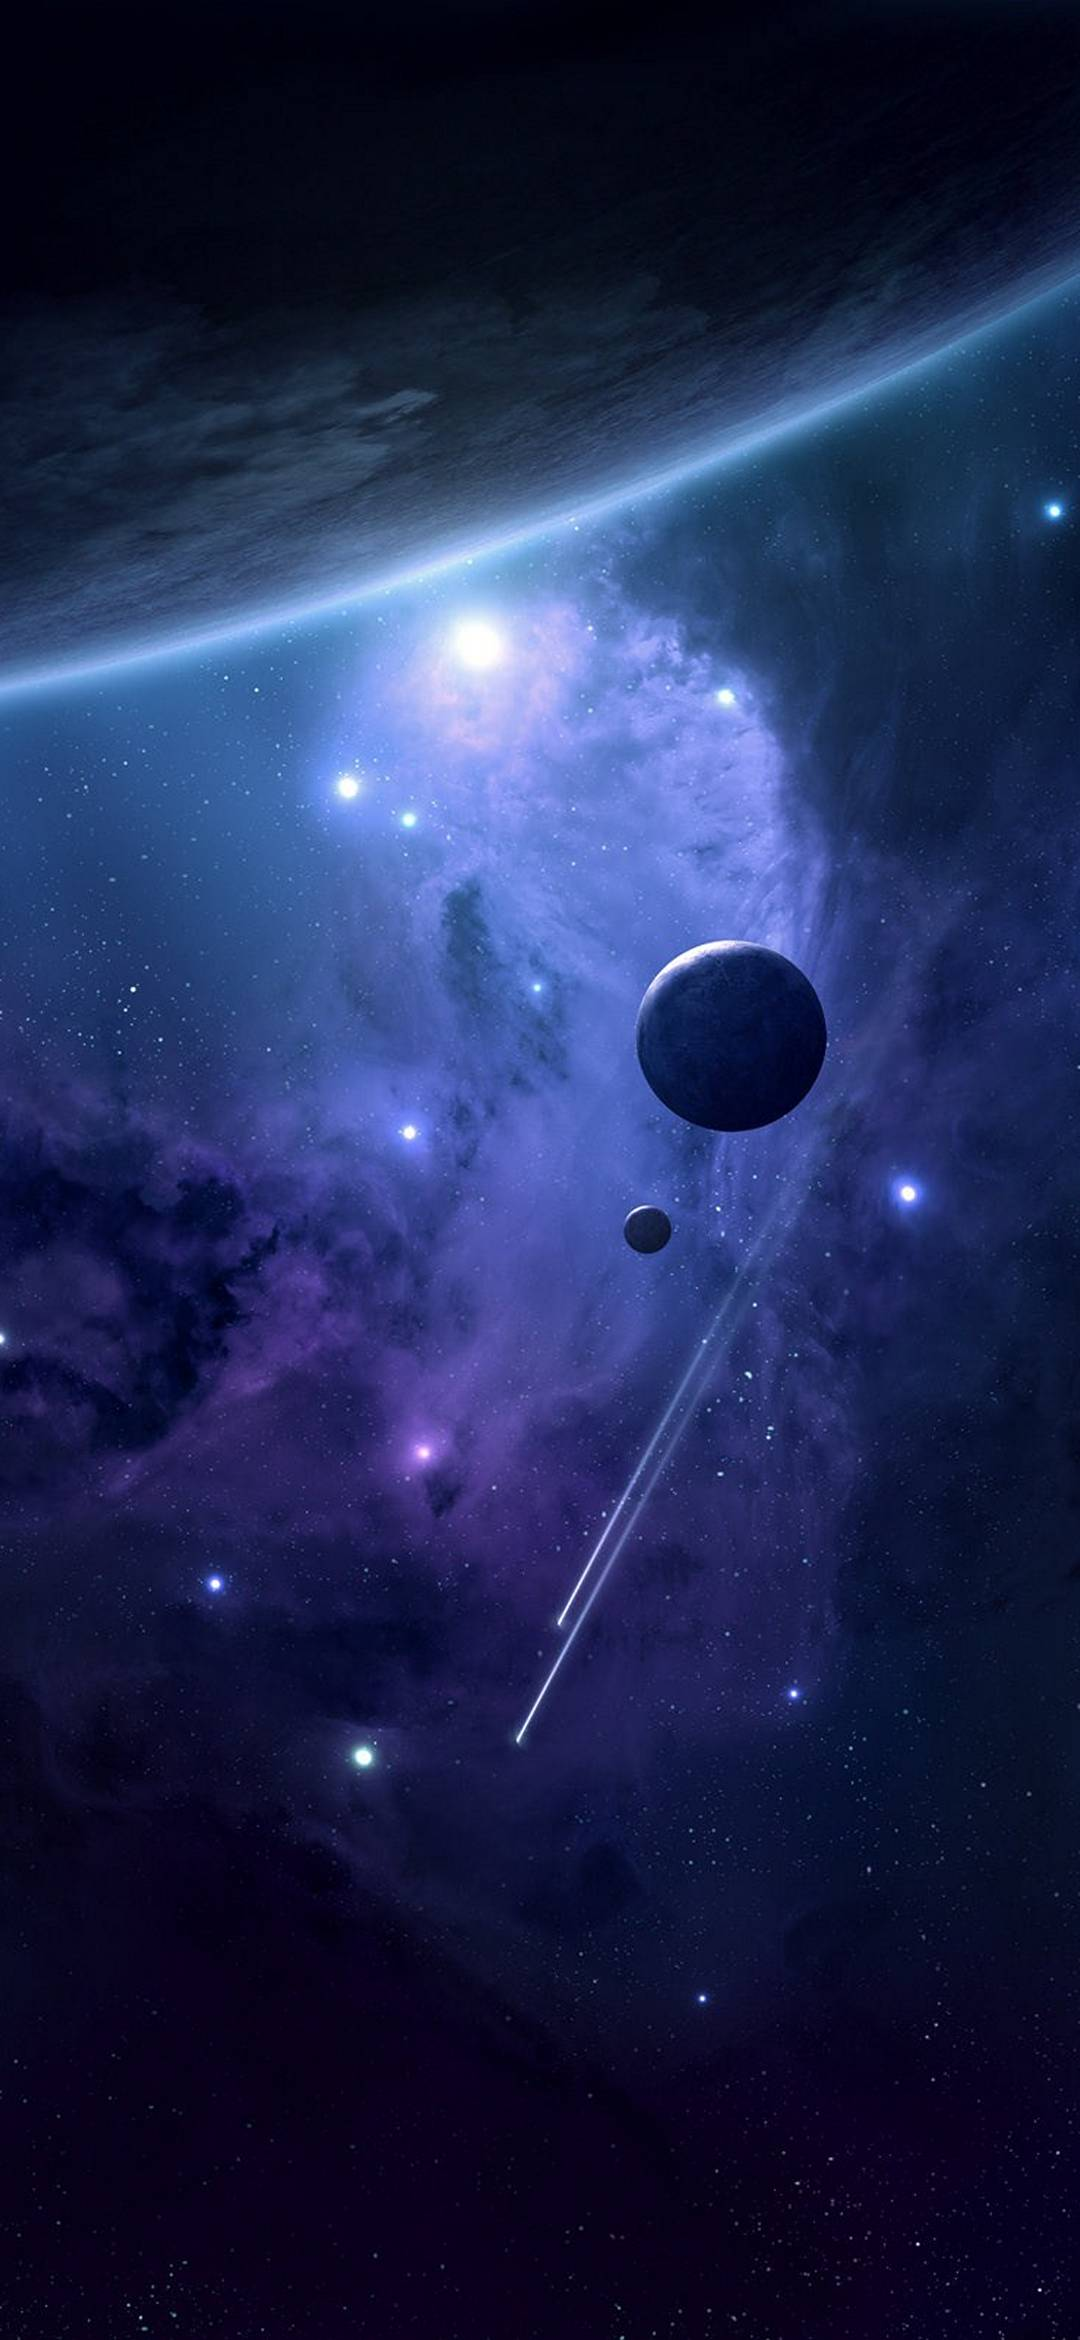 Space Planets Satellites 1080x2340